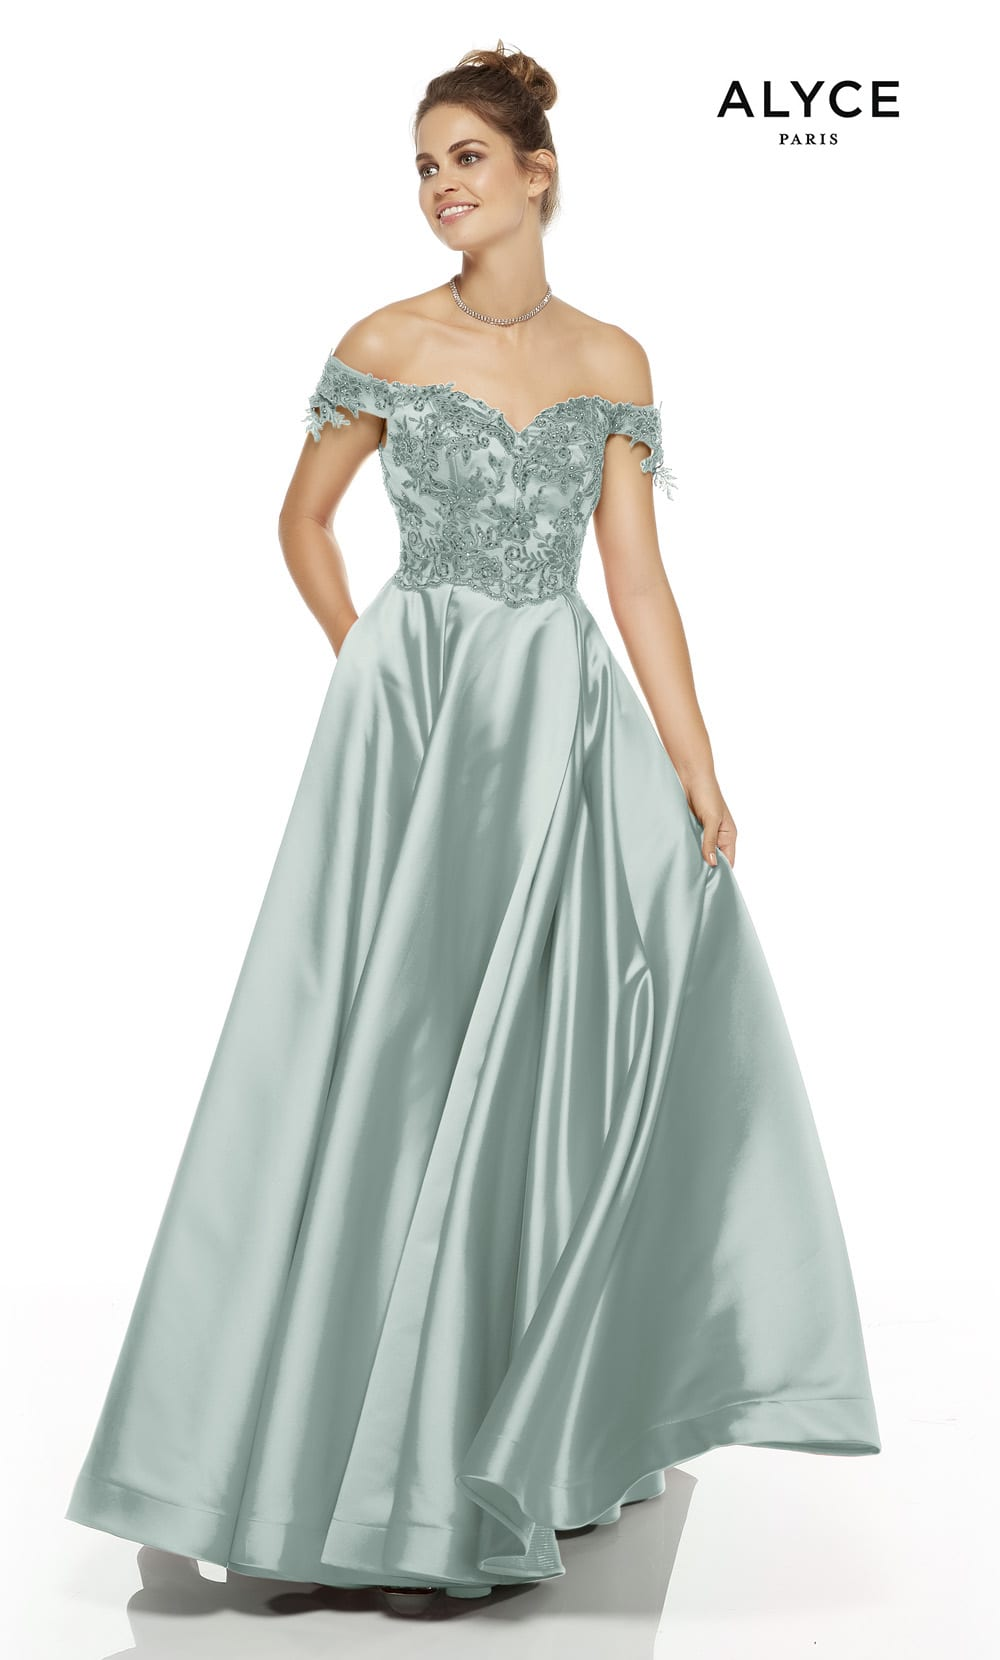 Alyce ball gown prom dress